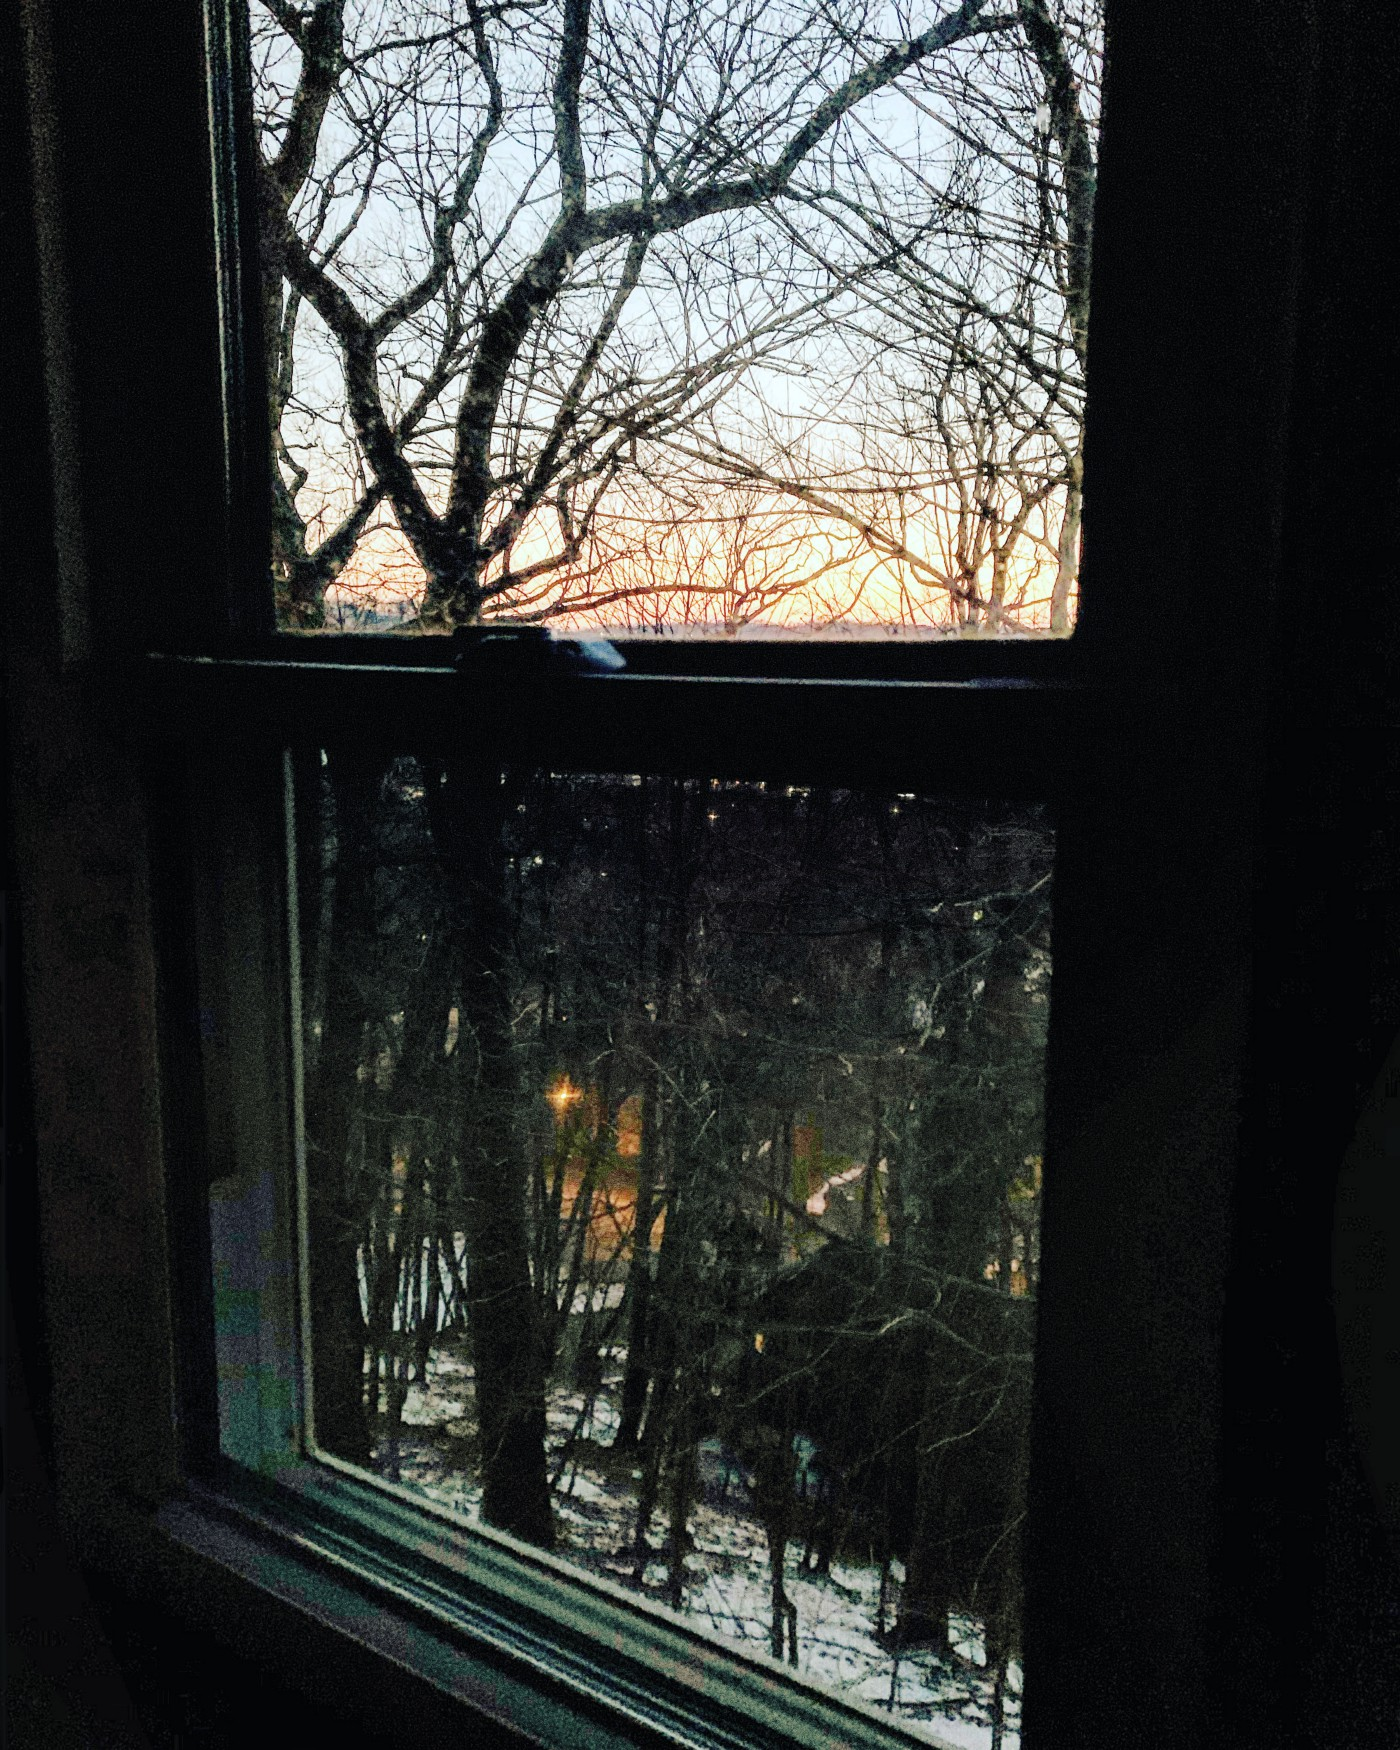 The reader is looking out the window at an ominous sunset in the dusk covered woods